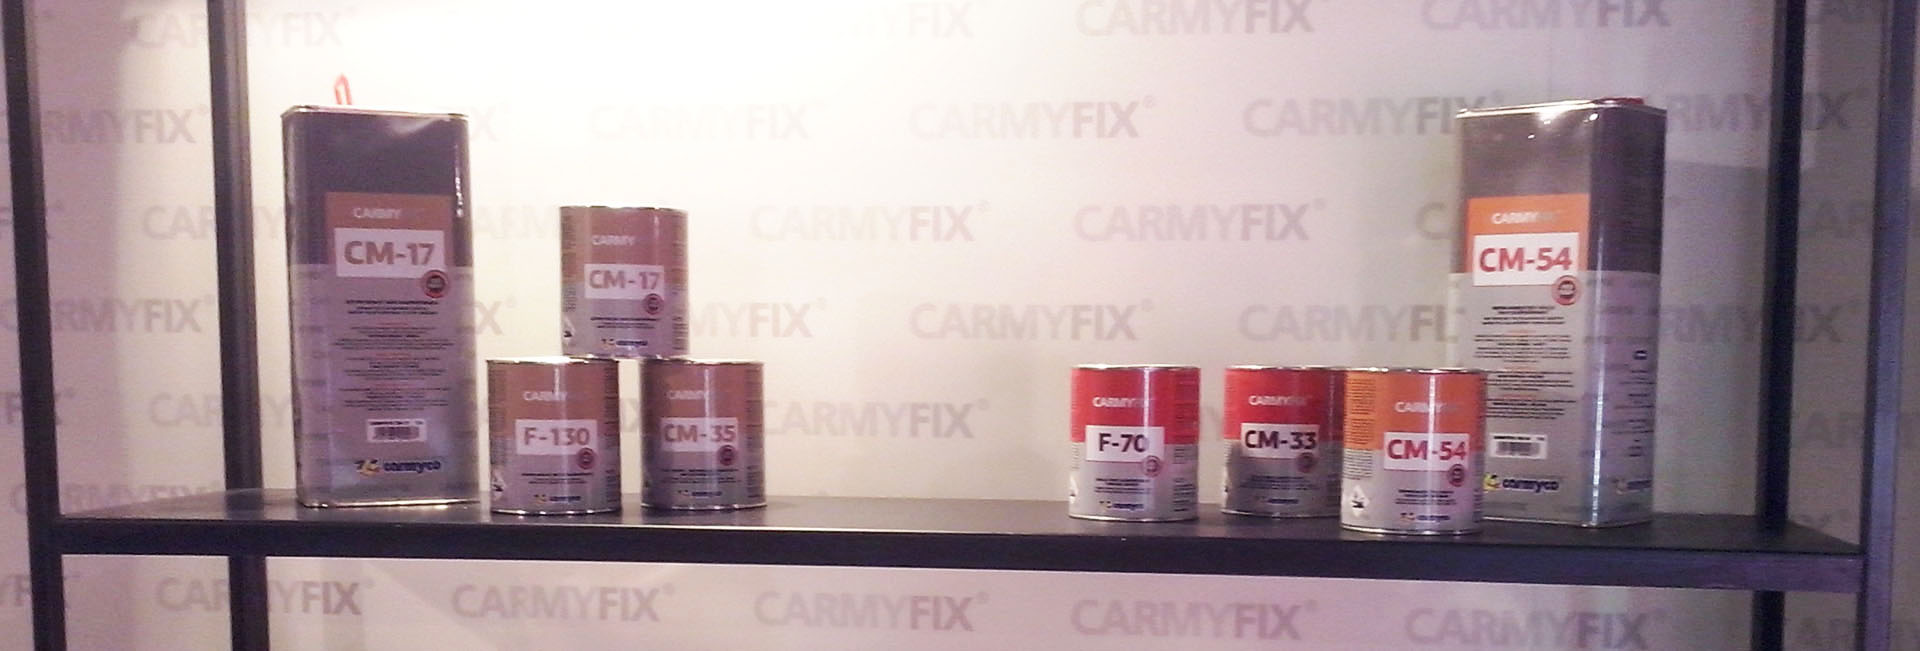 CARMYCO PRODUCTS_1